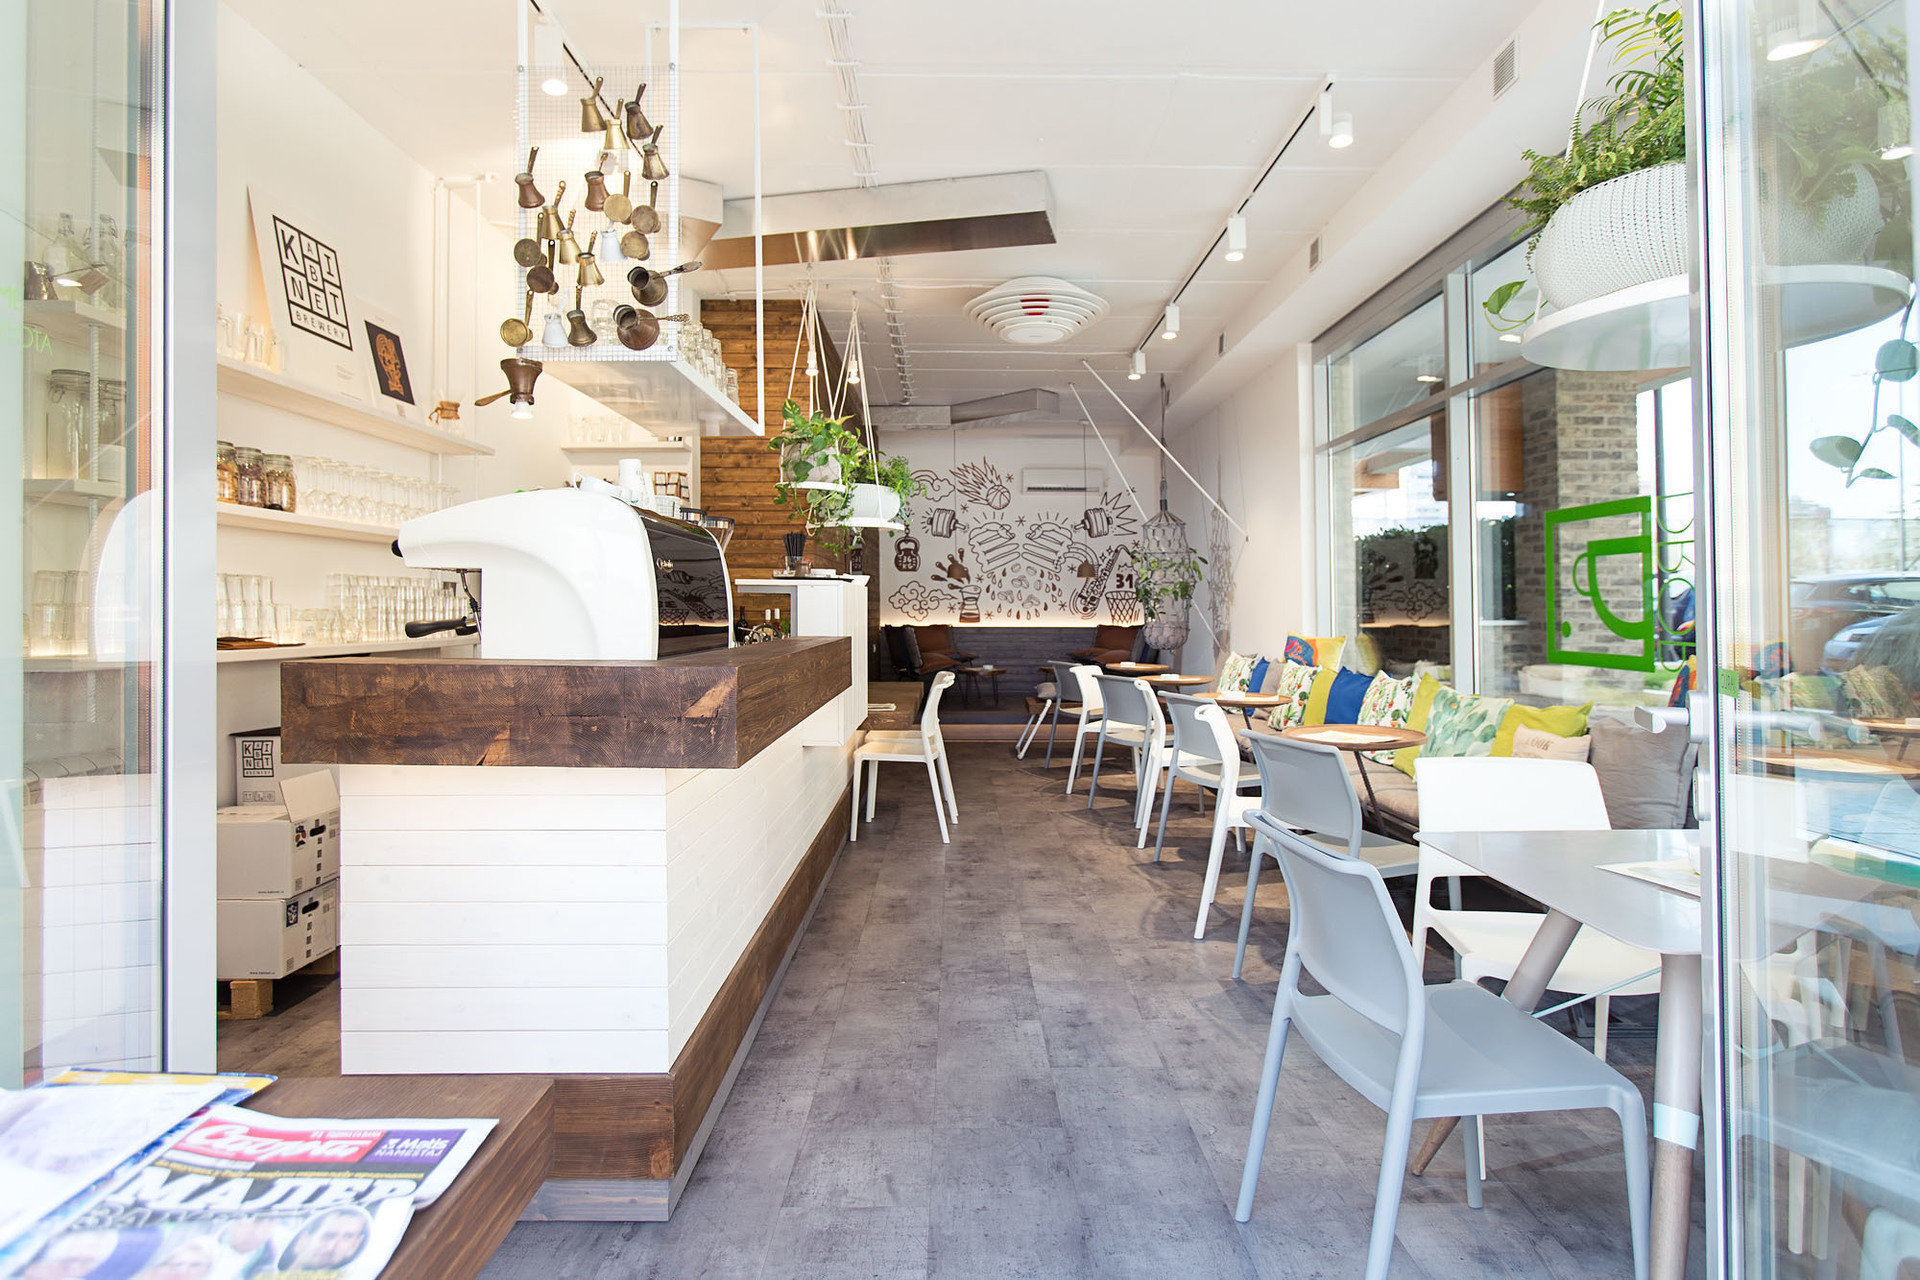 Drop Caffe: A Work-Friendly Place in Belgrade